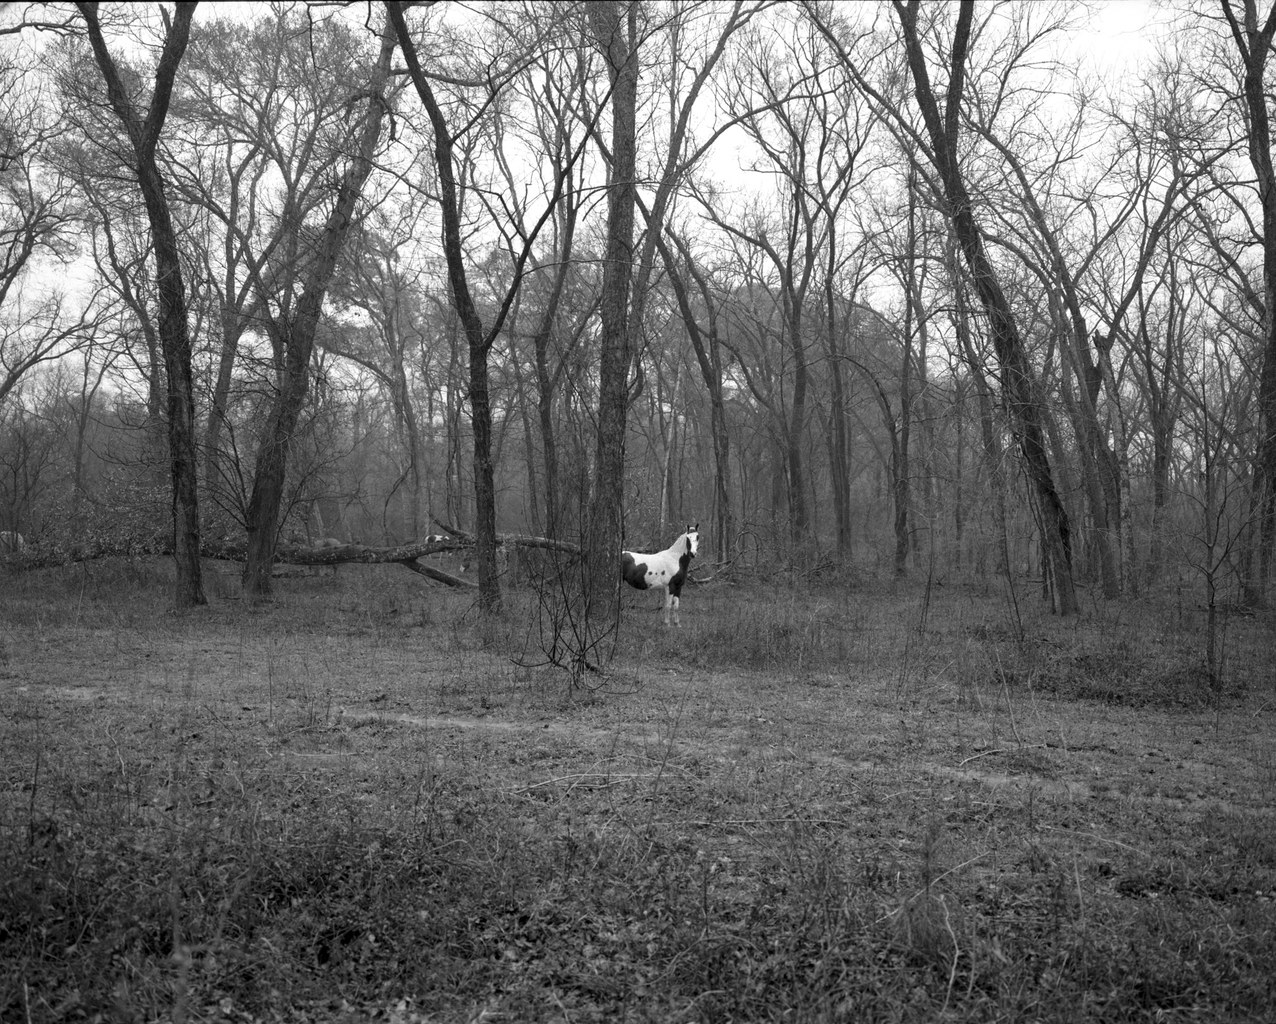 White Horse Location of the Former Town of Boonville,. Bryan,TX. 2008 © Timothy Briner